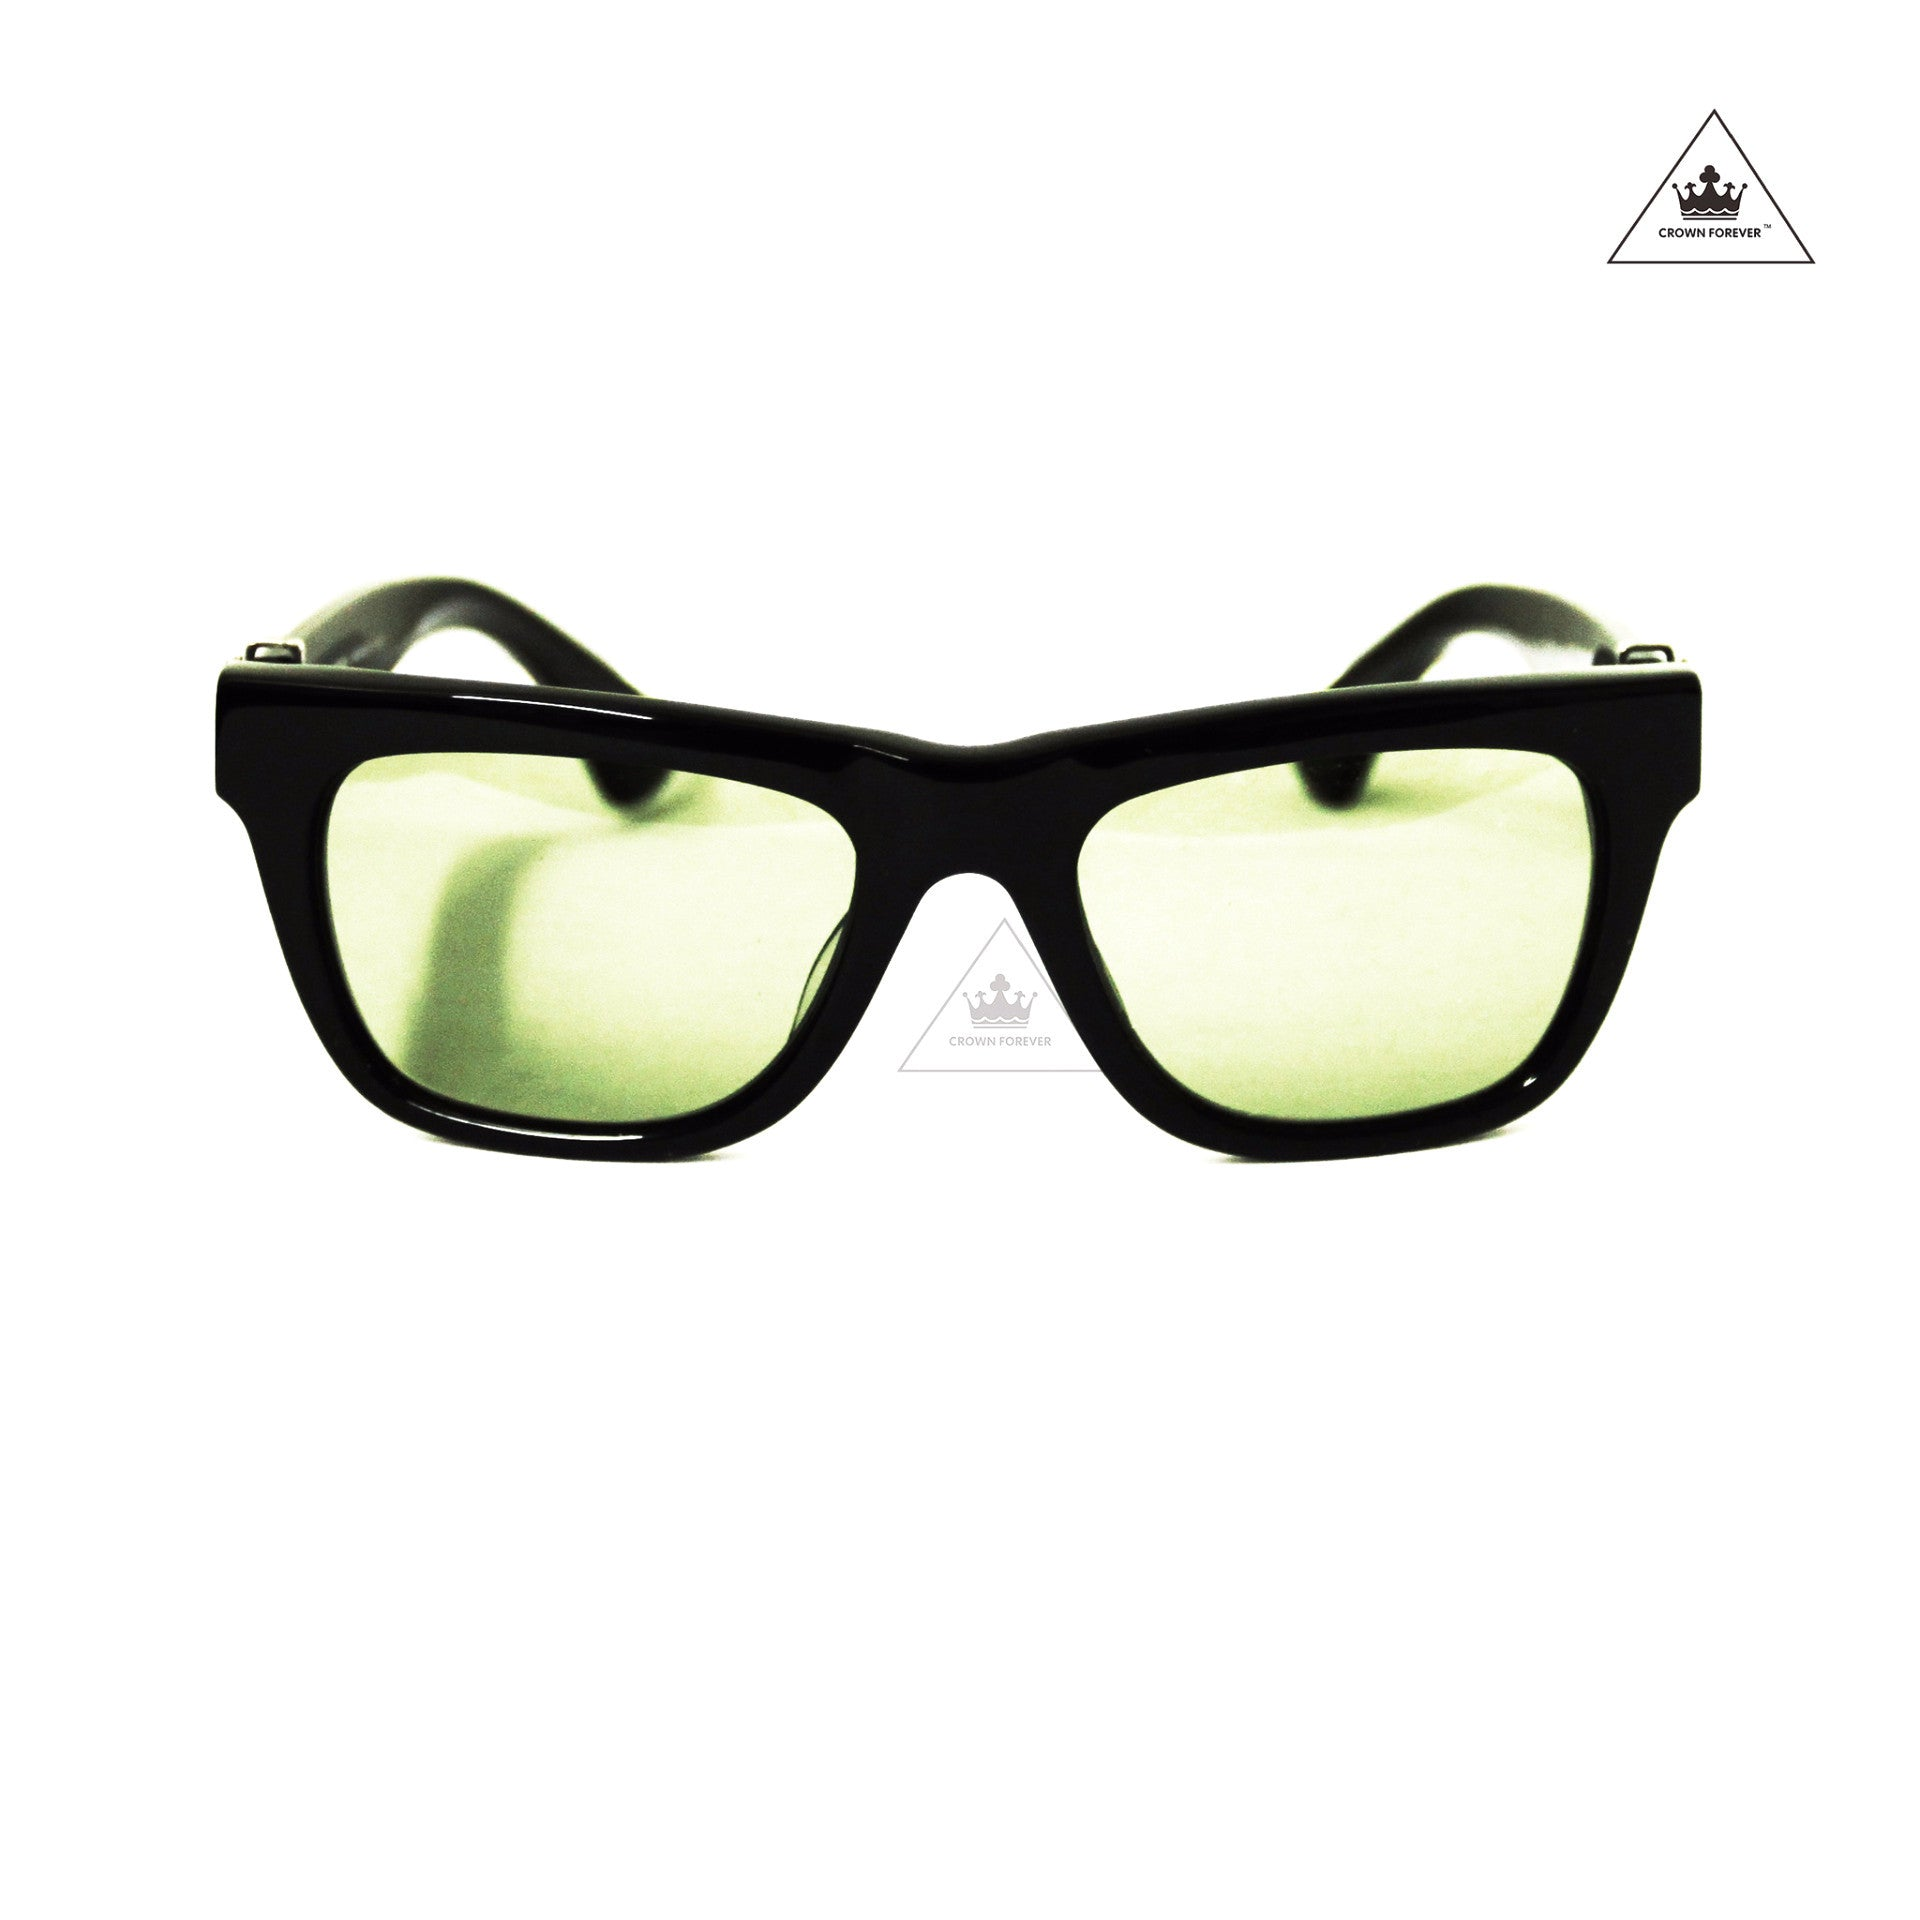 Chrome Hearts Lil Zombie Sunglasses – Crown Forever